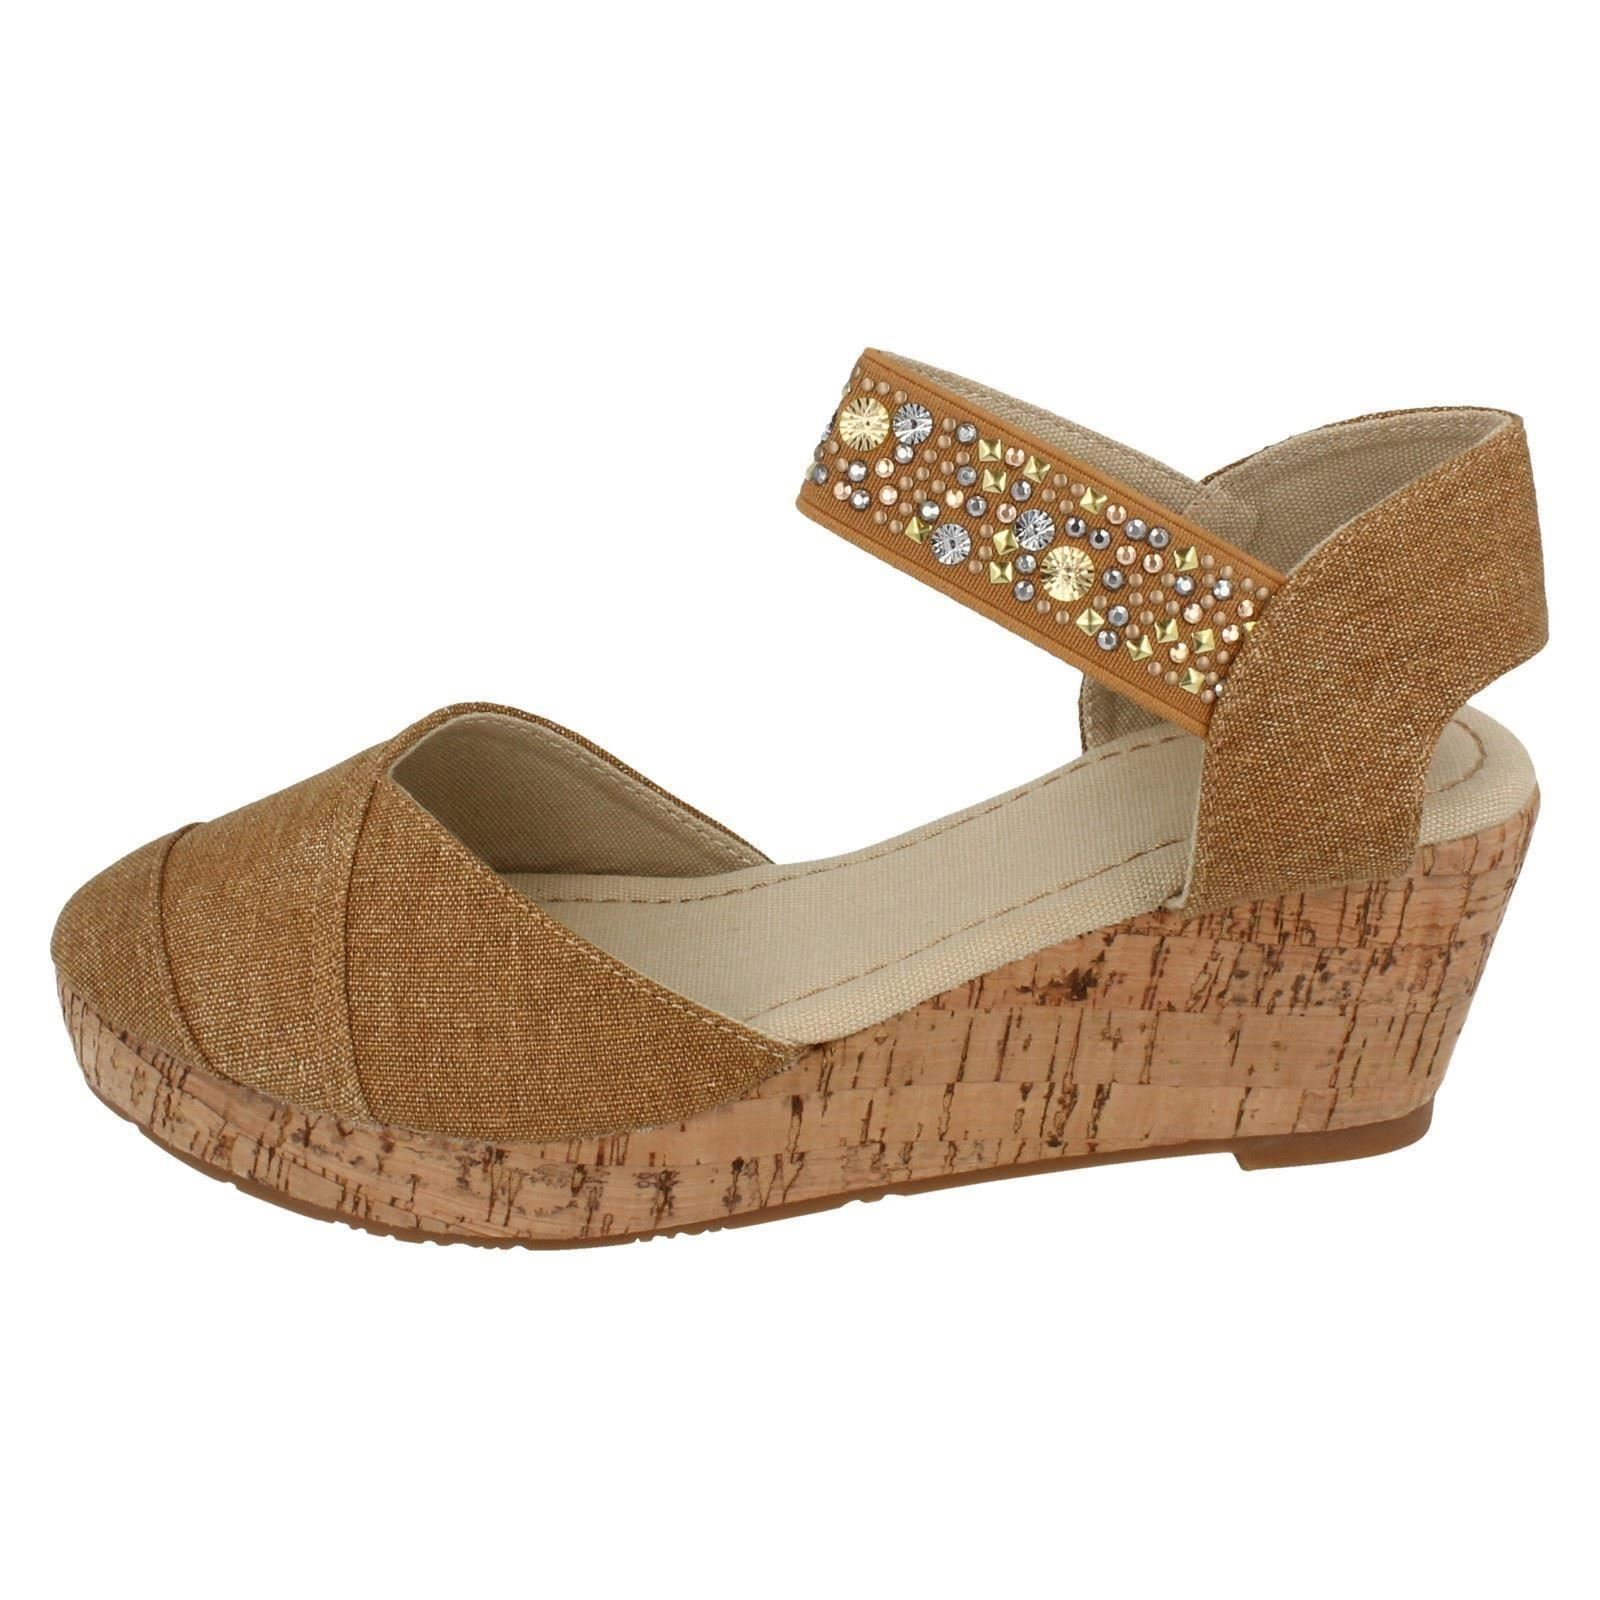 Girls Spot On Wedge Sandals Style - H6022 - D